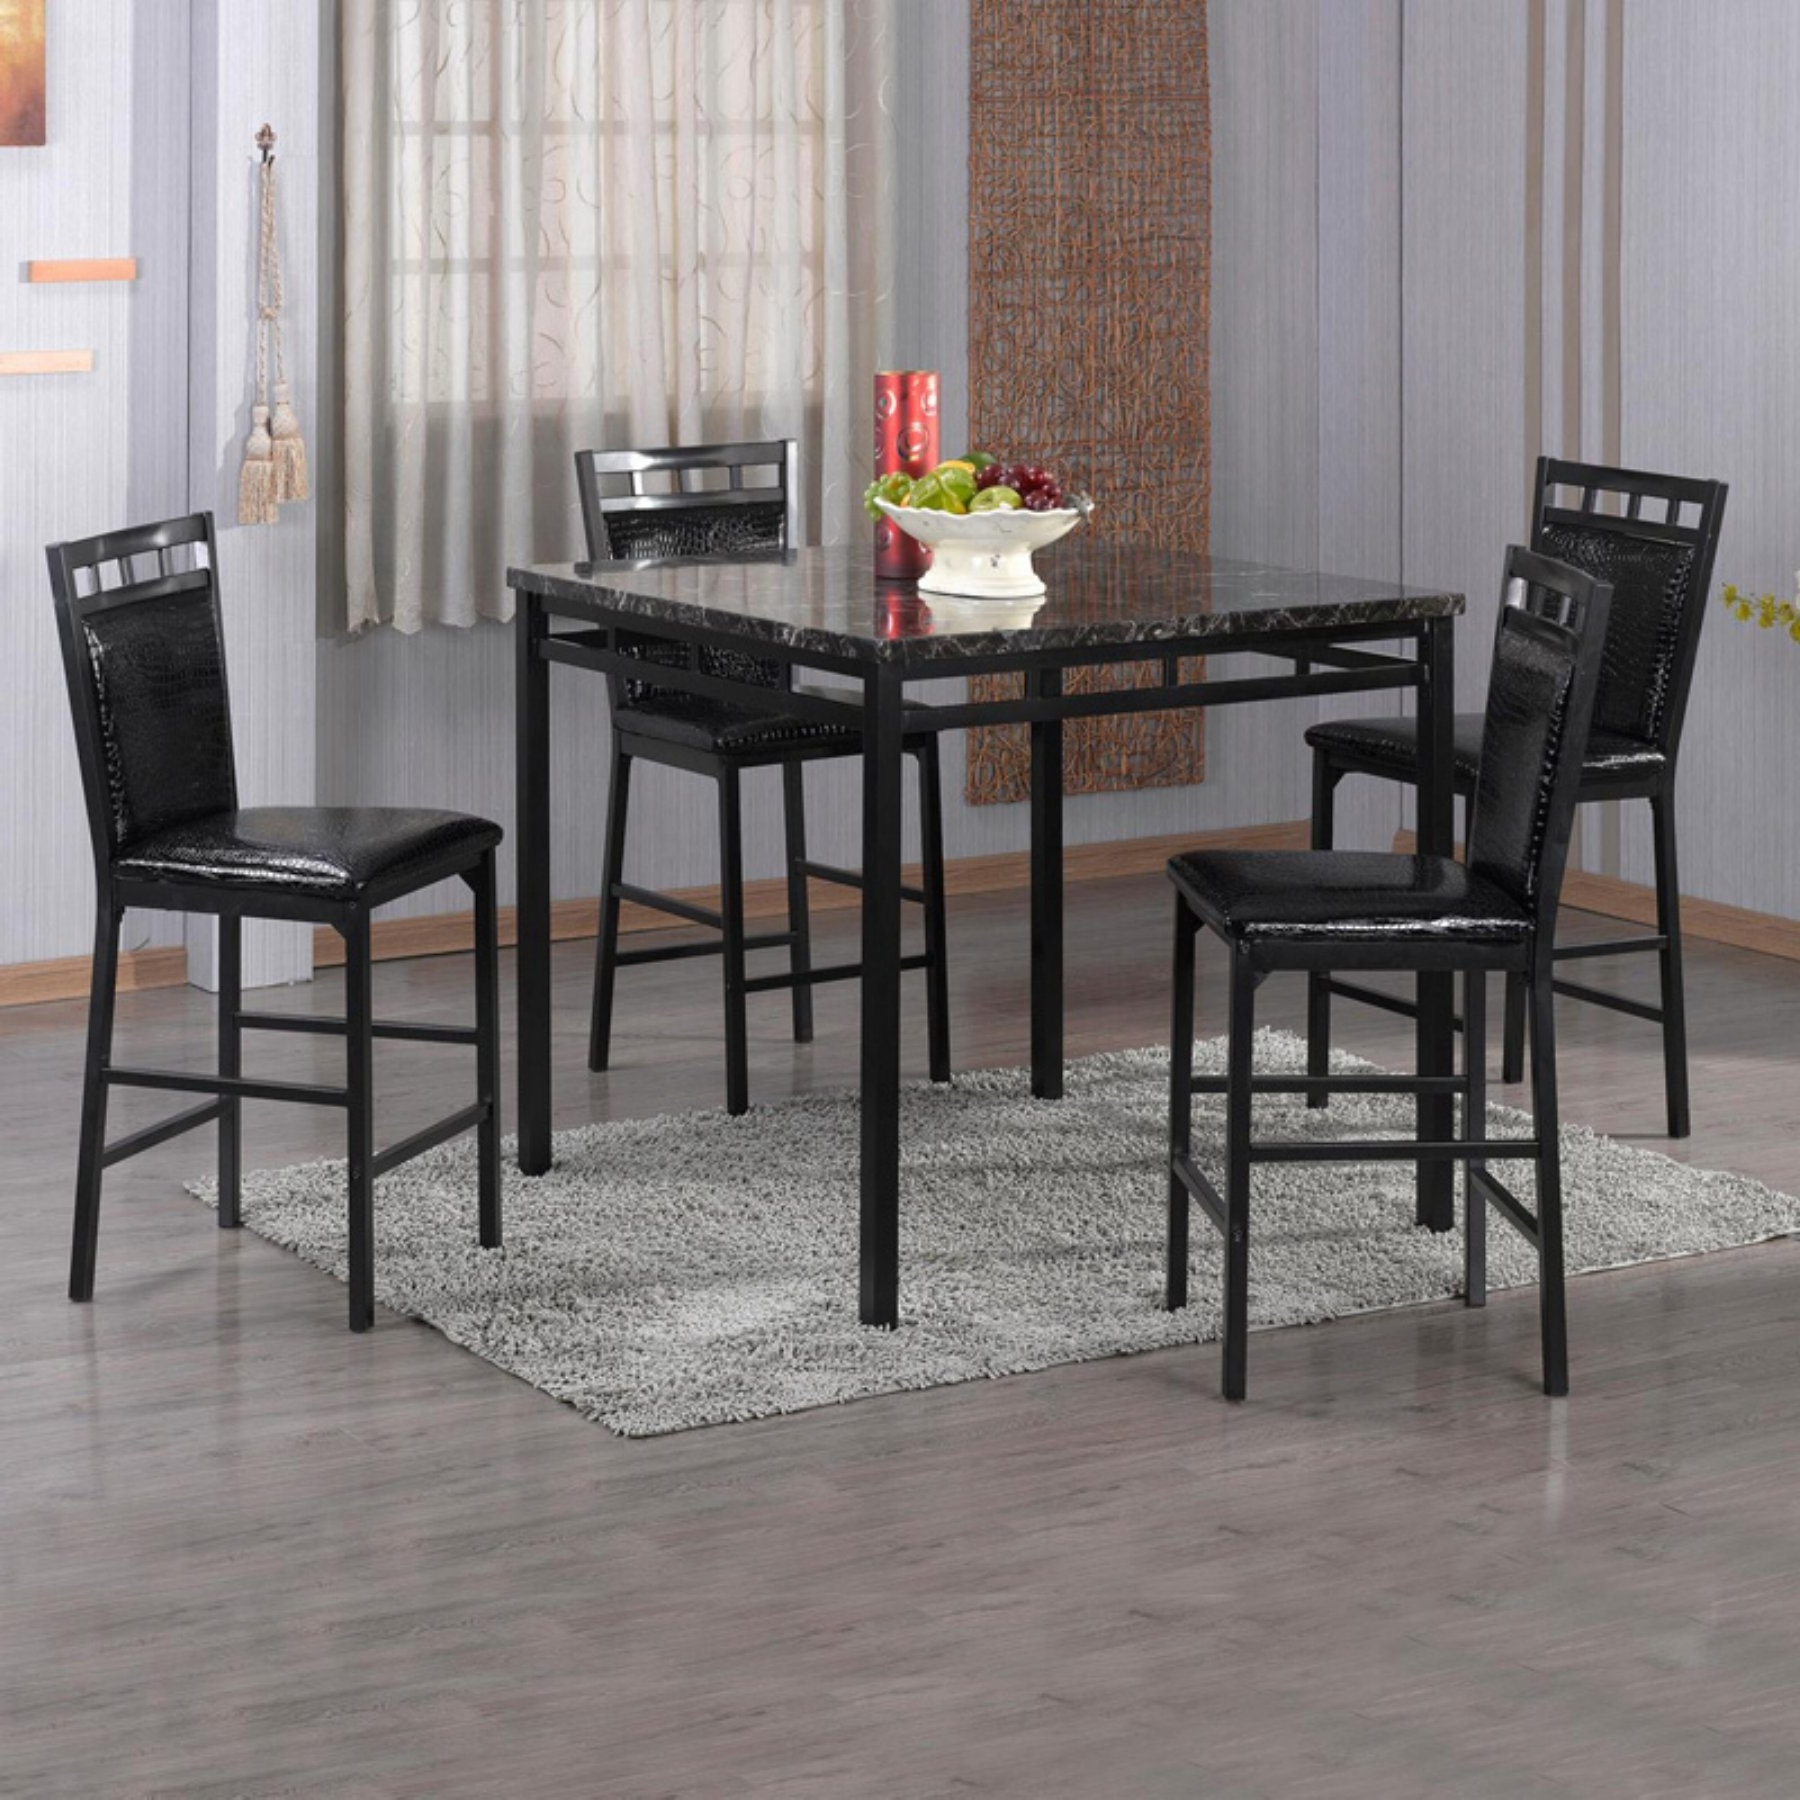 Home Source Industries 5 Piece Counter Height Dining Table Set In With Regard To Latest Valencia 5 Piece Counter Sets With Counterstool (View 16 of 25)